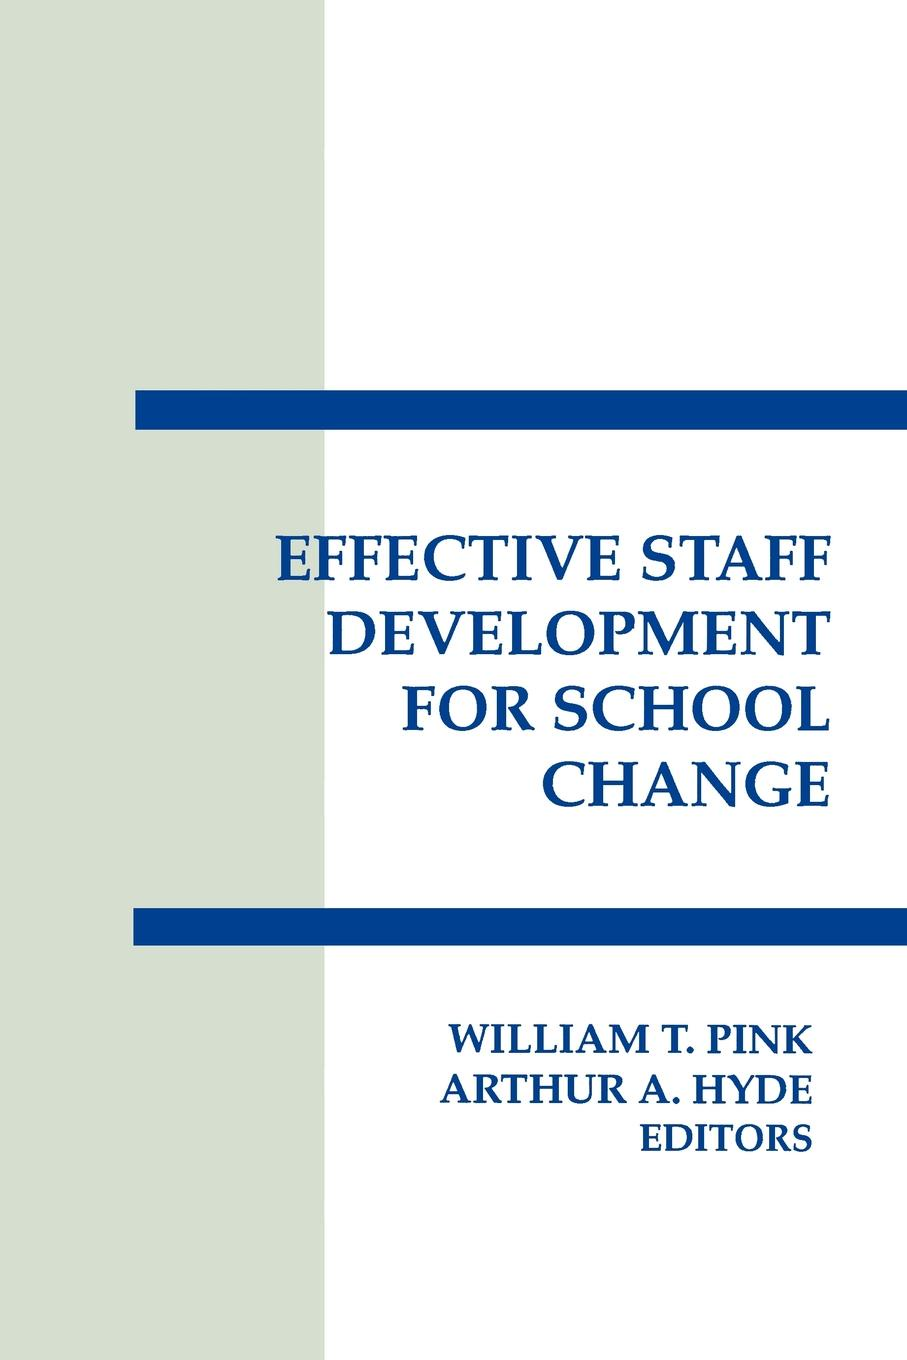 William T. Pink, Arthur A. Hyde, Authur Hyde Effective Staff Development for School Change staff as change agents